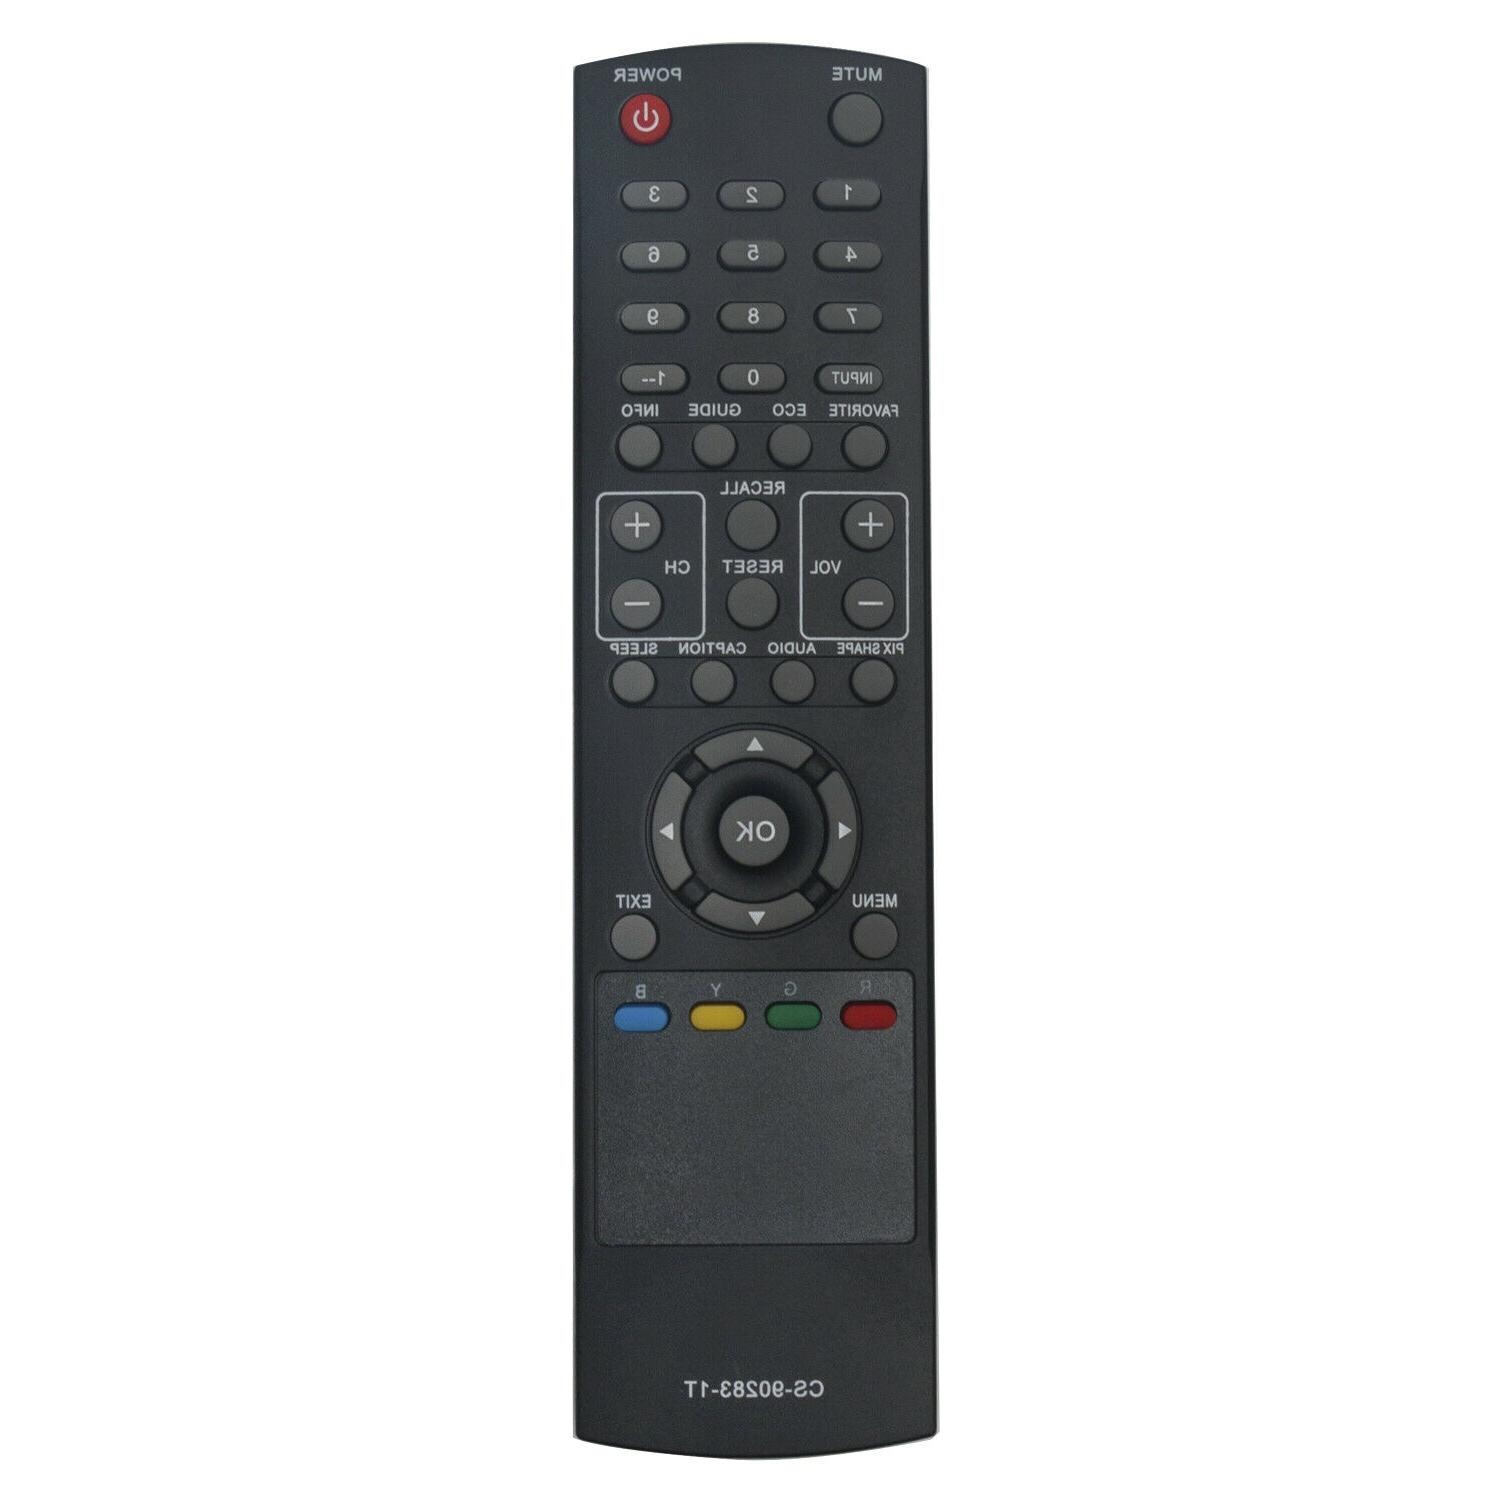 new cs 90283 1t replace remote control